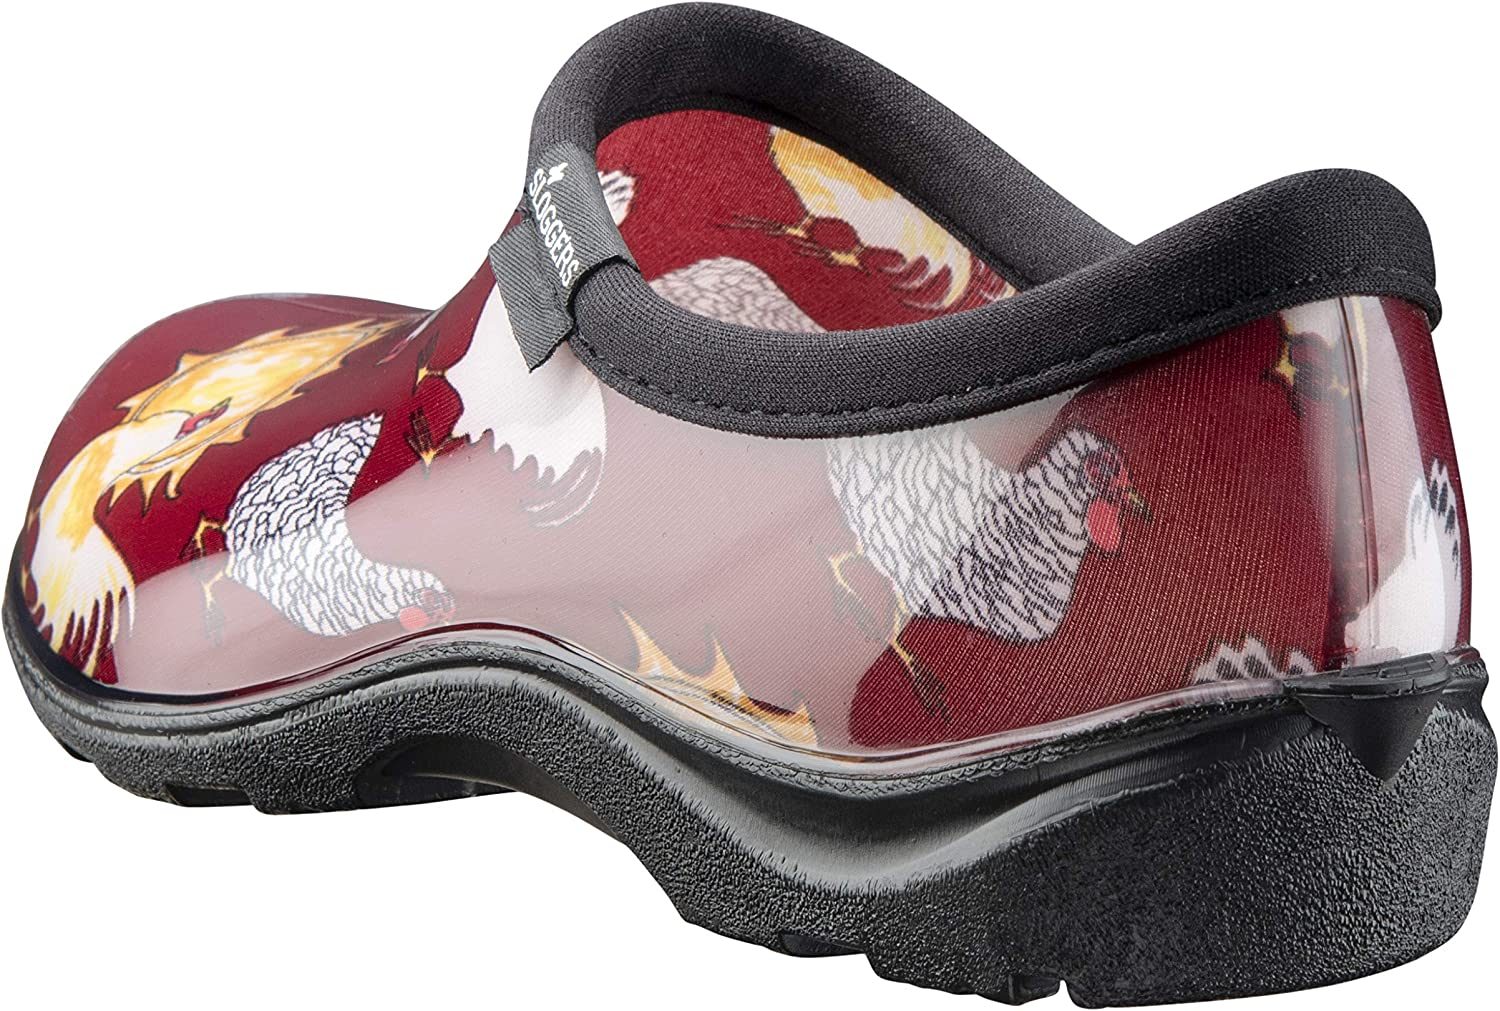 Sloggers Women's Waterproof Rain and Garden Shoe with Comfort Insole, Chickens Barn Red, Size 9, Style 5116CBR09: Garden & Outdoor